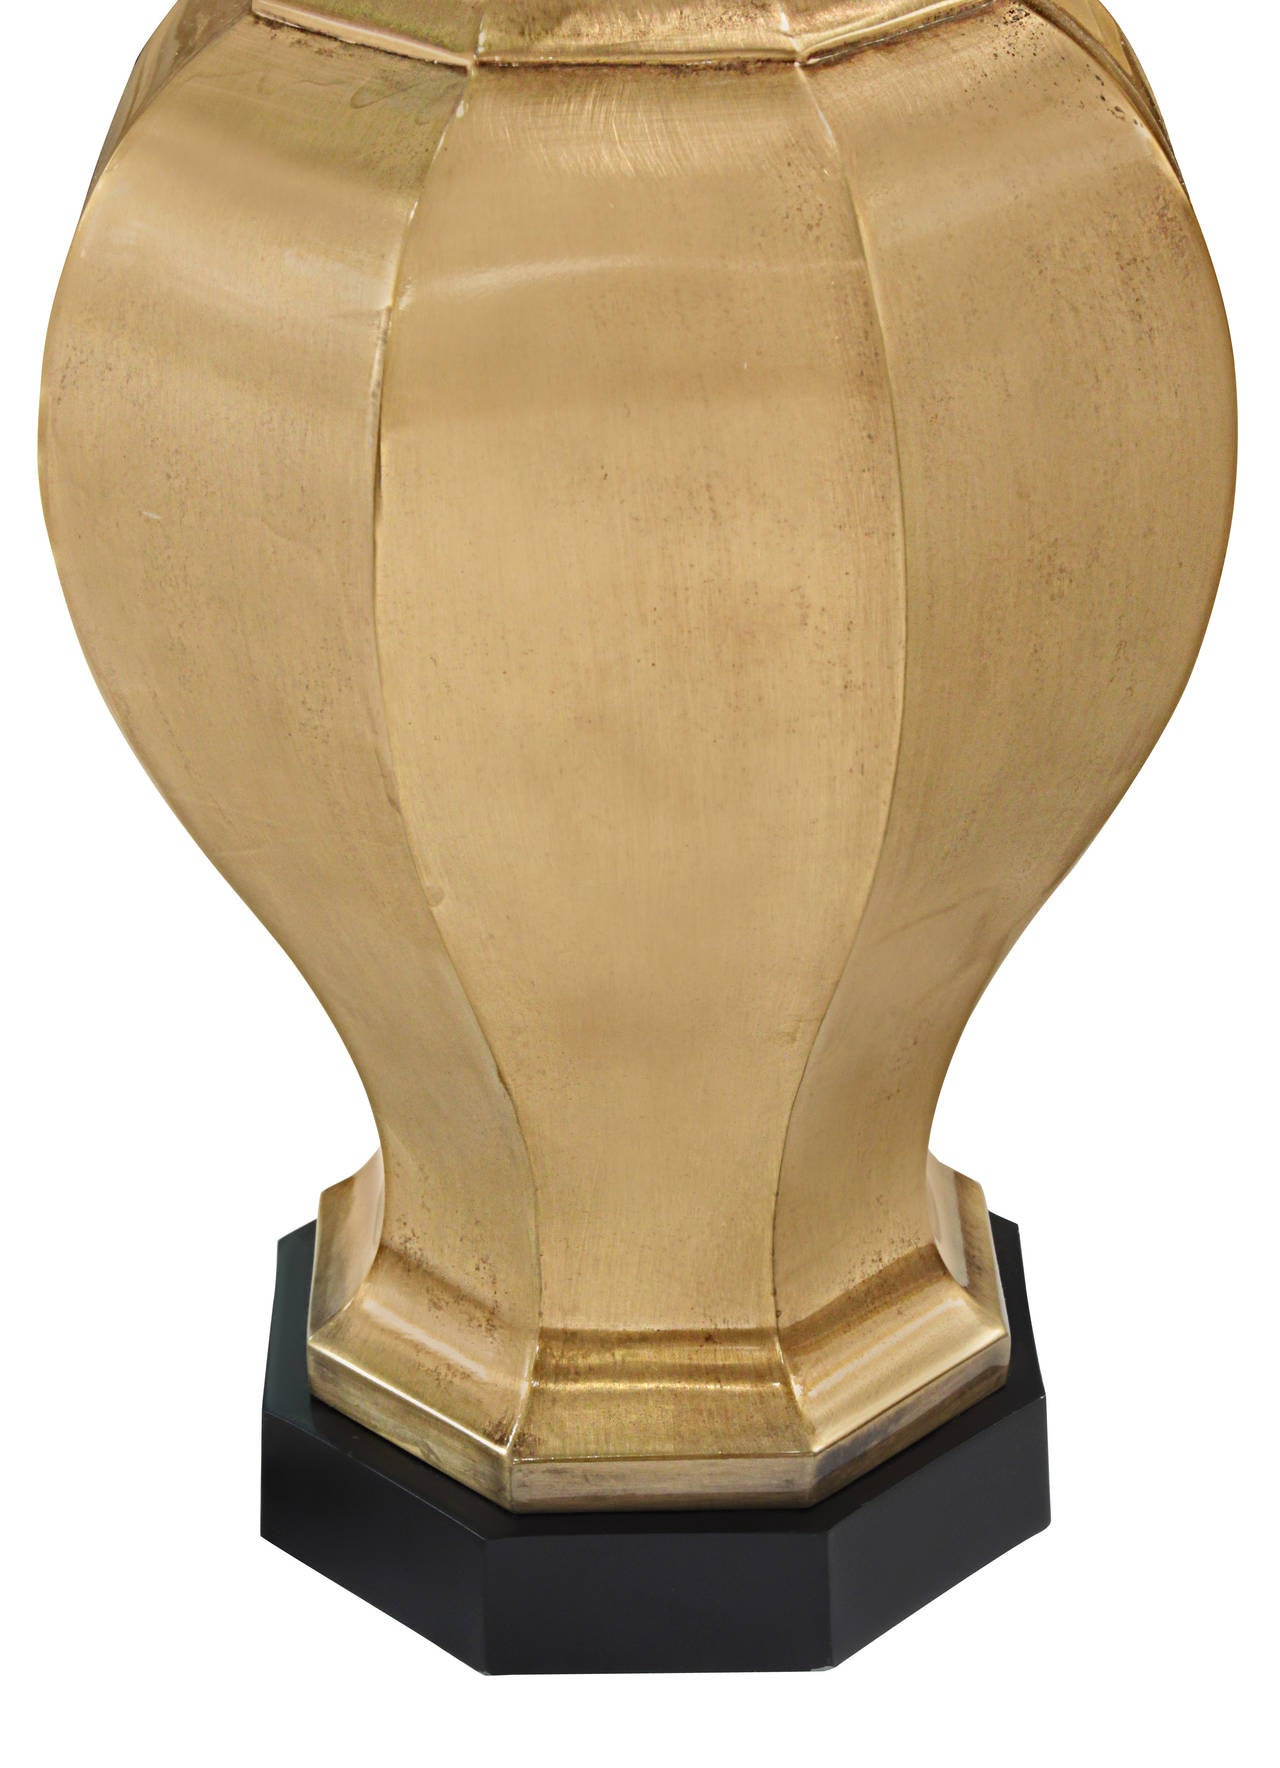 Hand-Crafted Pair of Table Lamps in Satin Brass by Chapman Lighting For Sale